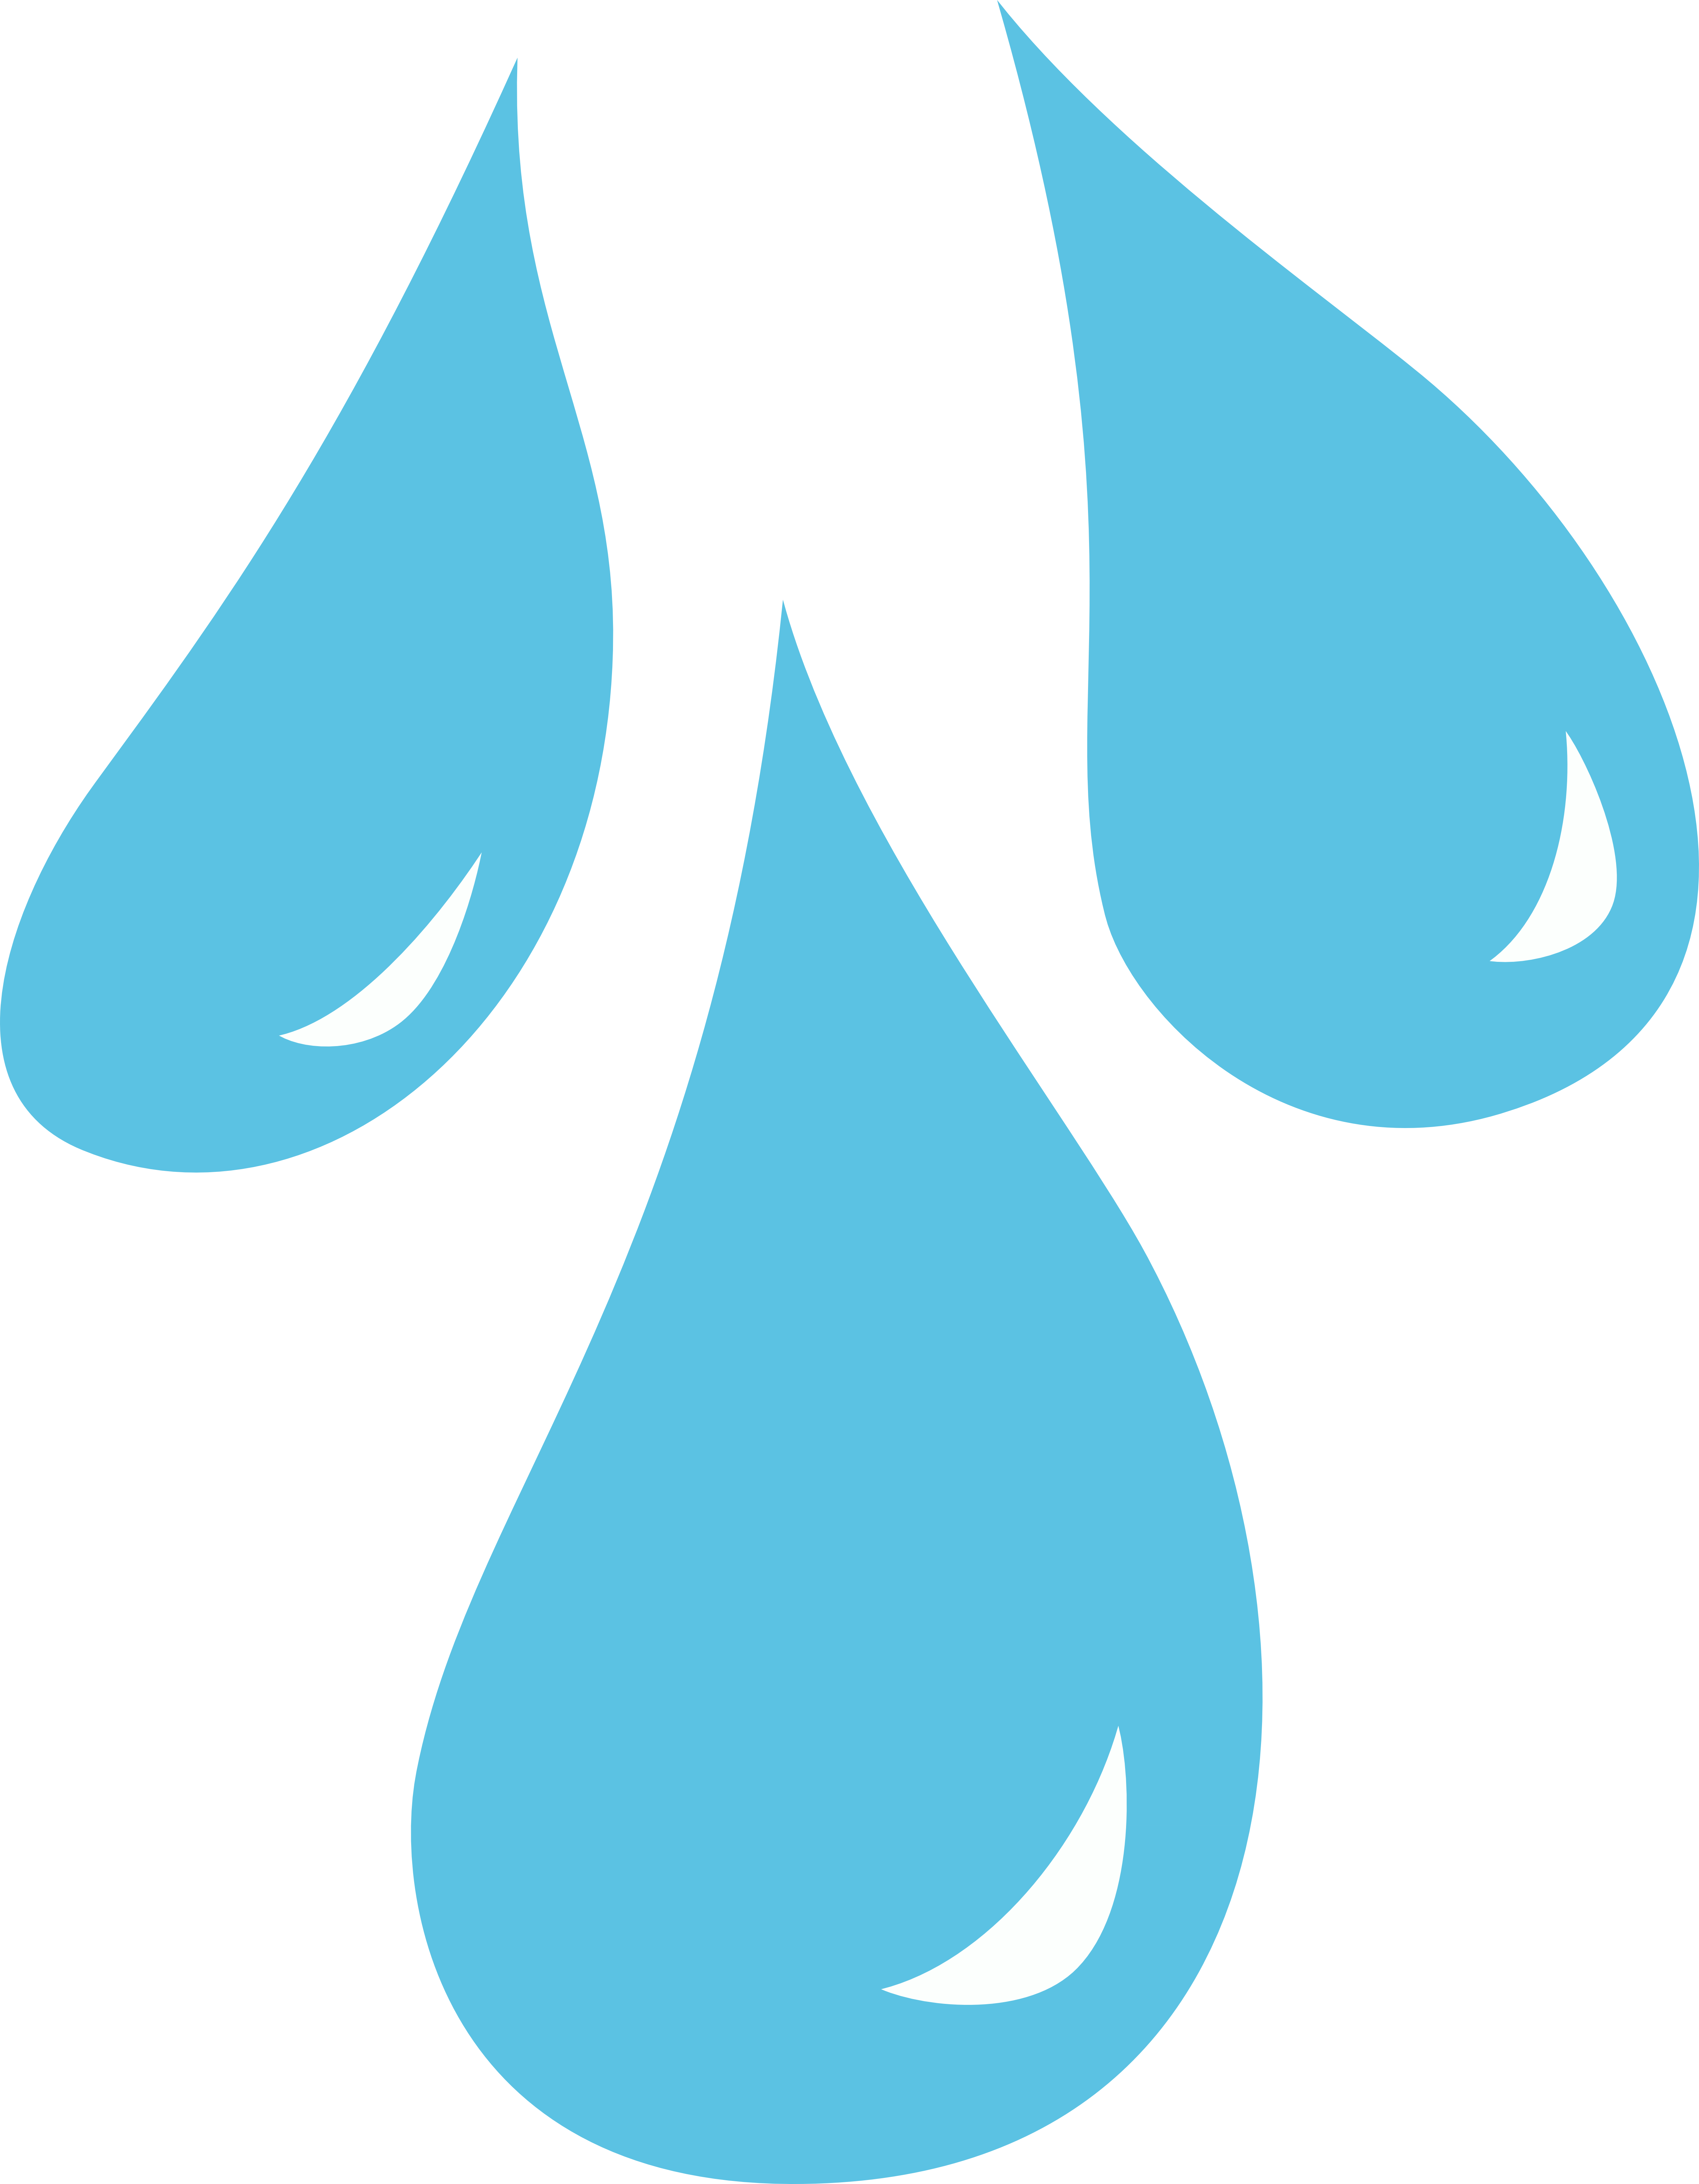 Water Drops clipart #8, Download drawings